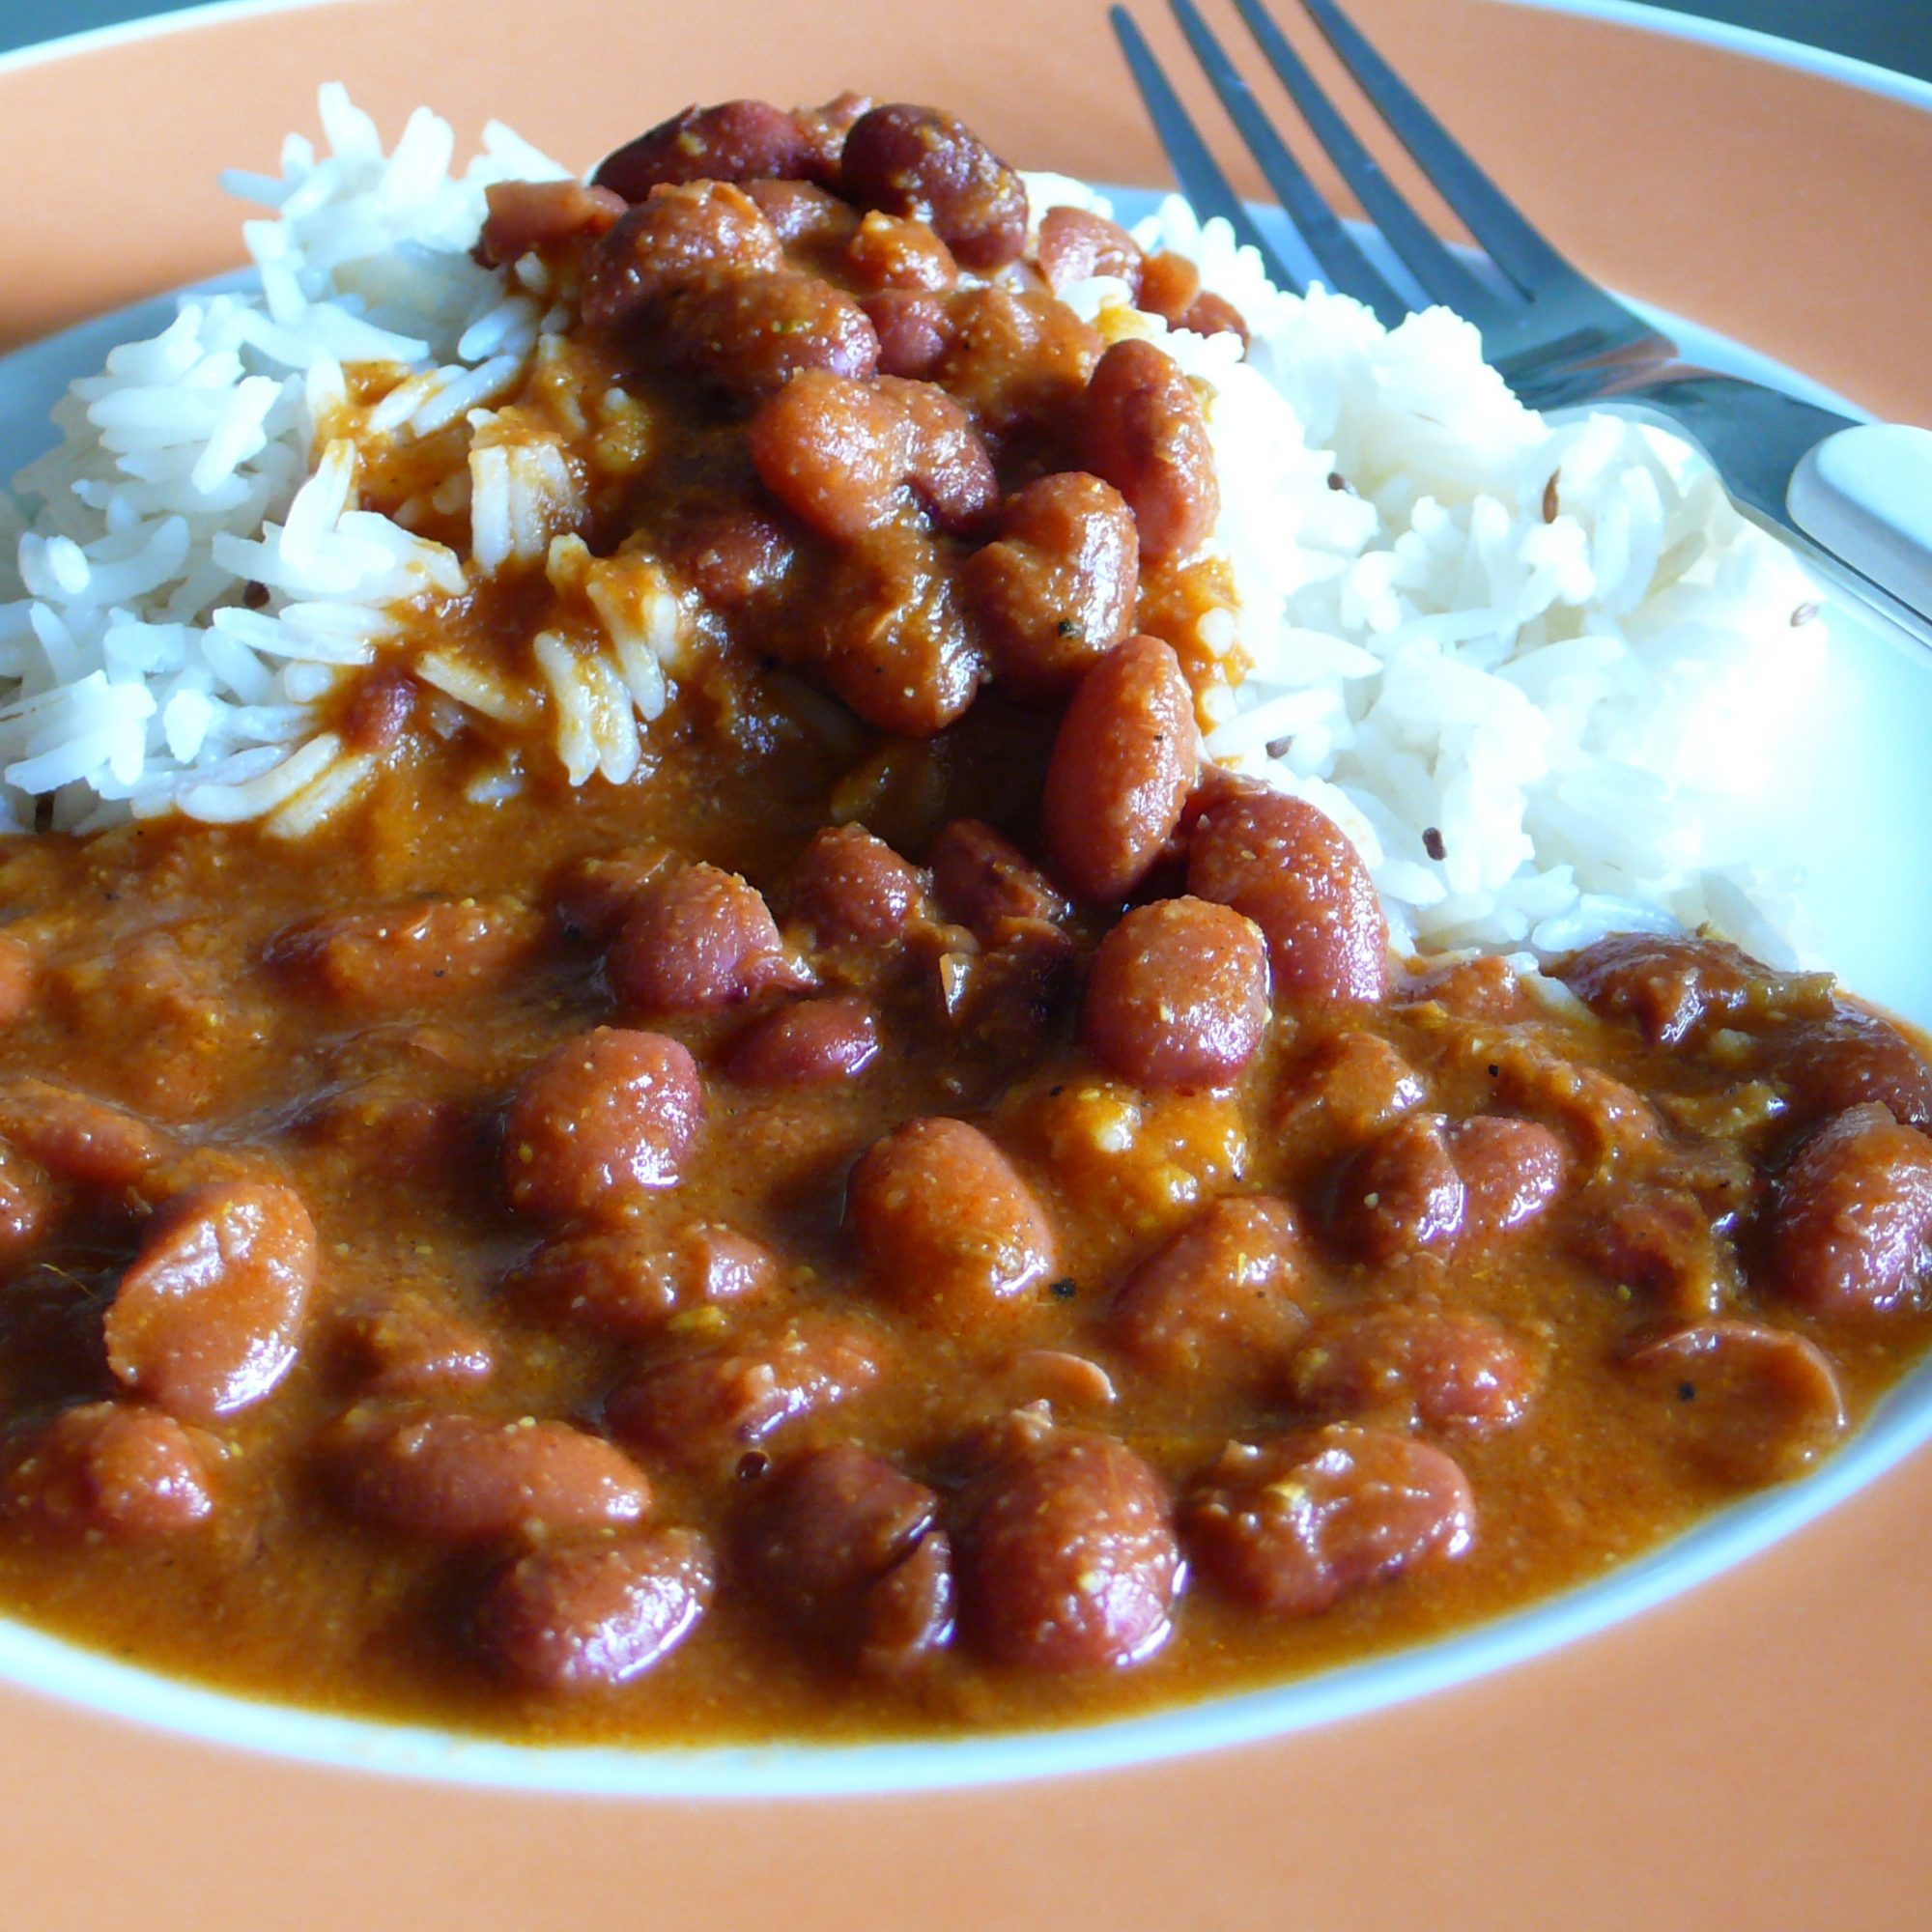 a plate of rajma with rice